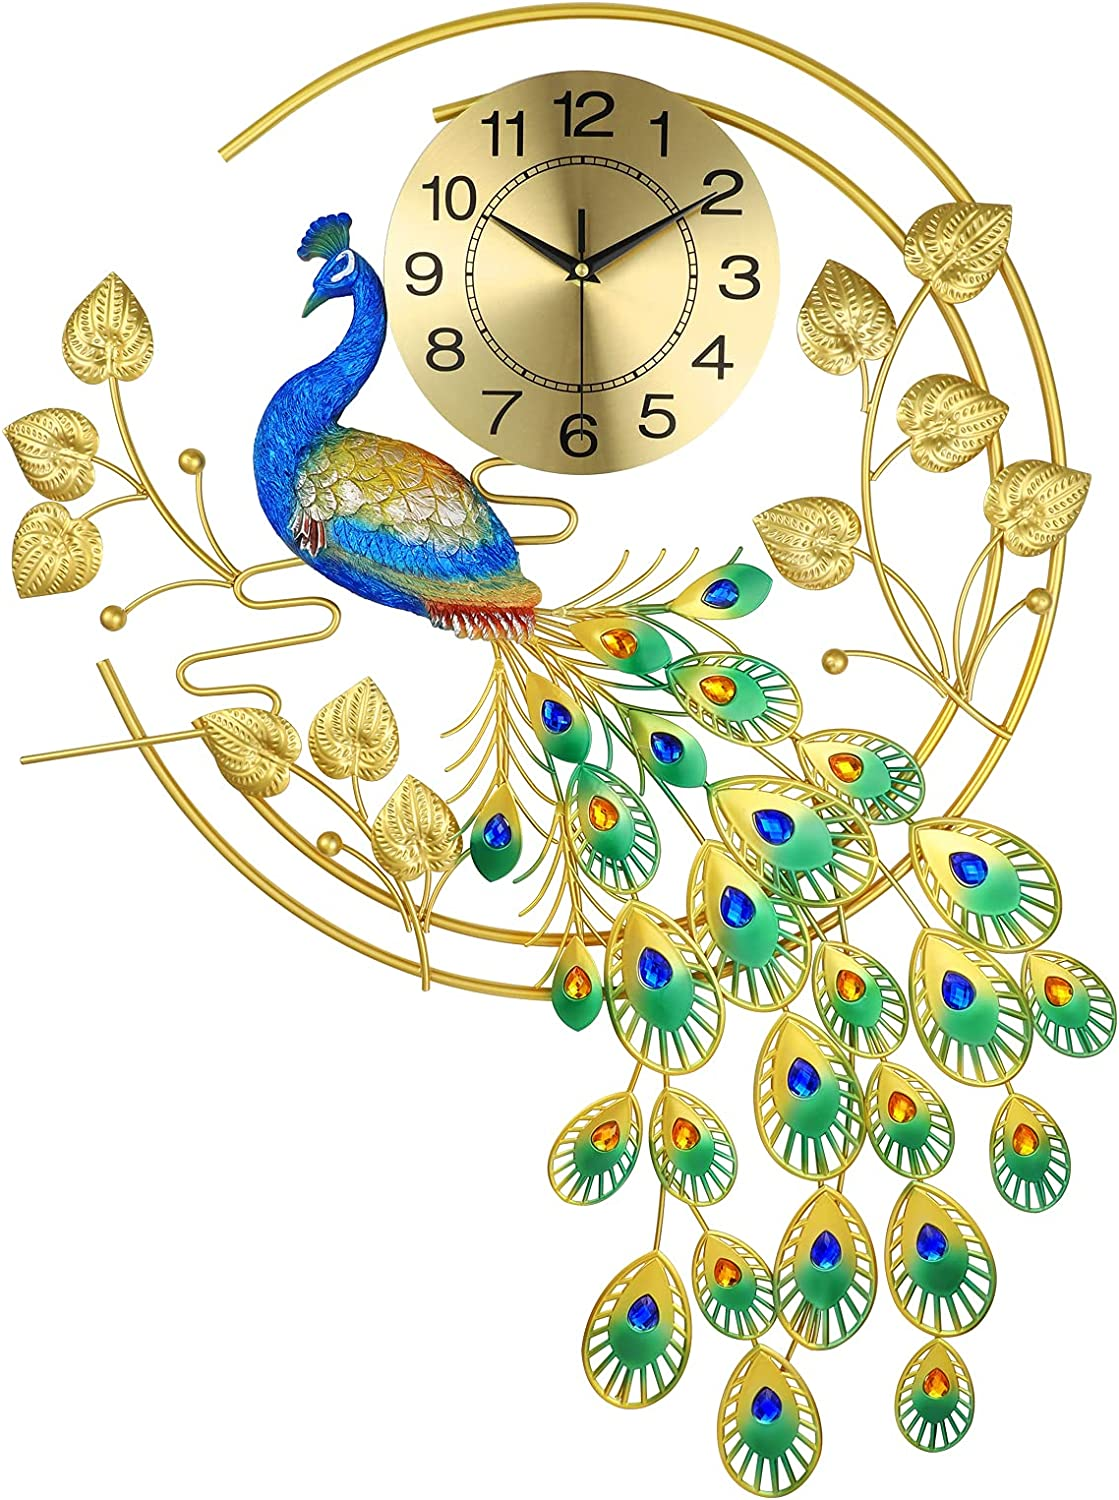 EURSON Large Peacock Wall Clocks for Living Room Decor Silent Non-Ticking 3D Quartz Metal Wall Clocks Crystal Modern Art Decorative for Bedroom and Kitchen (Blue&Green)